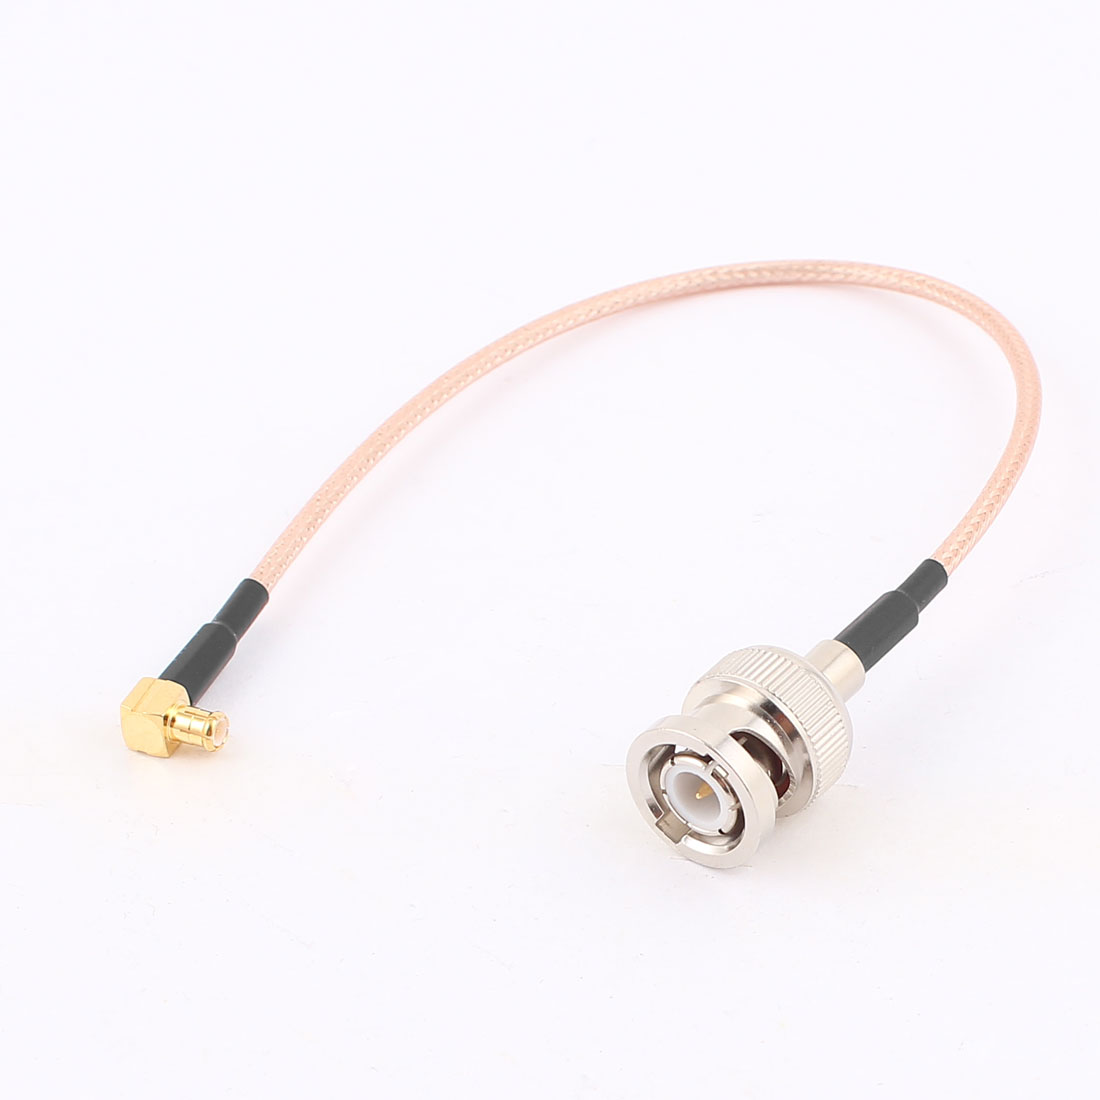 BNC Male to MCX Male Right Angle Adapter Connector RG316 Coaxial Cable 20cm